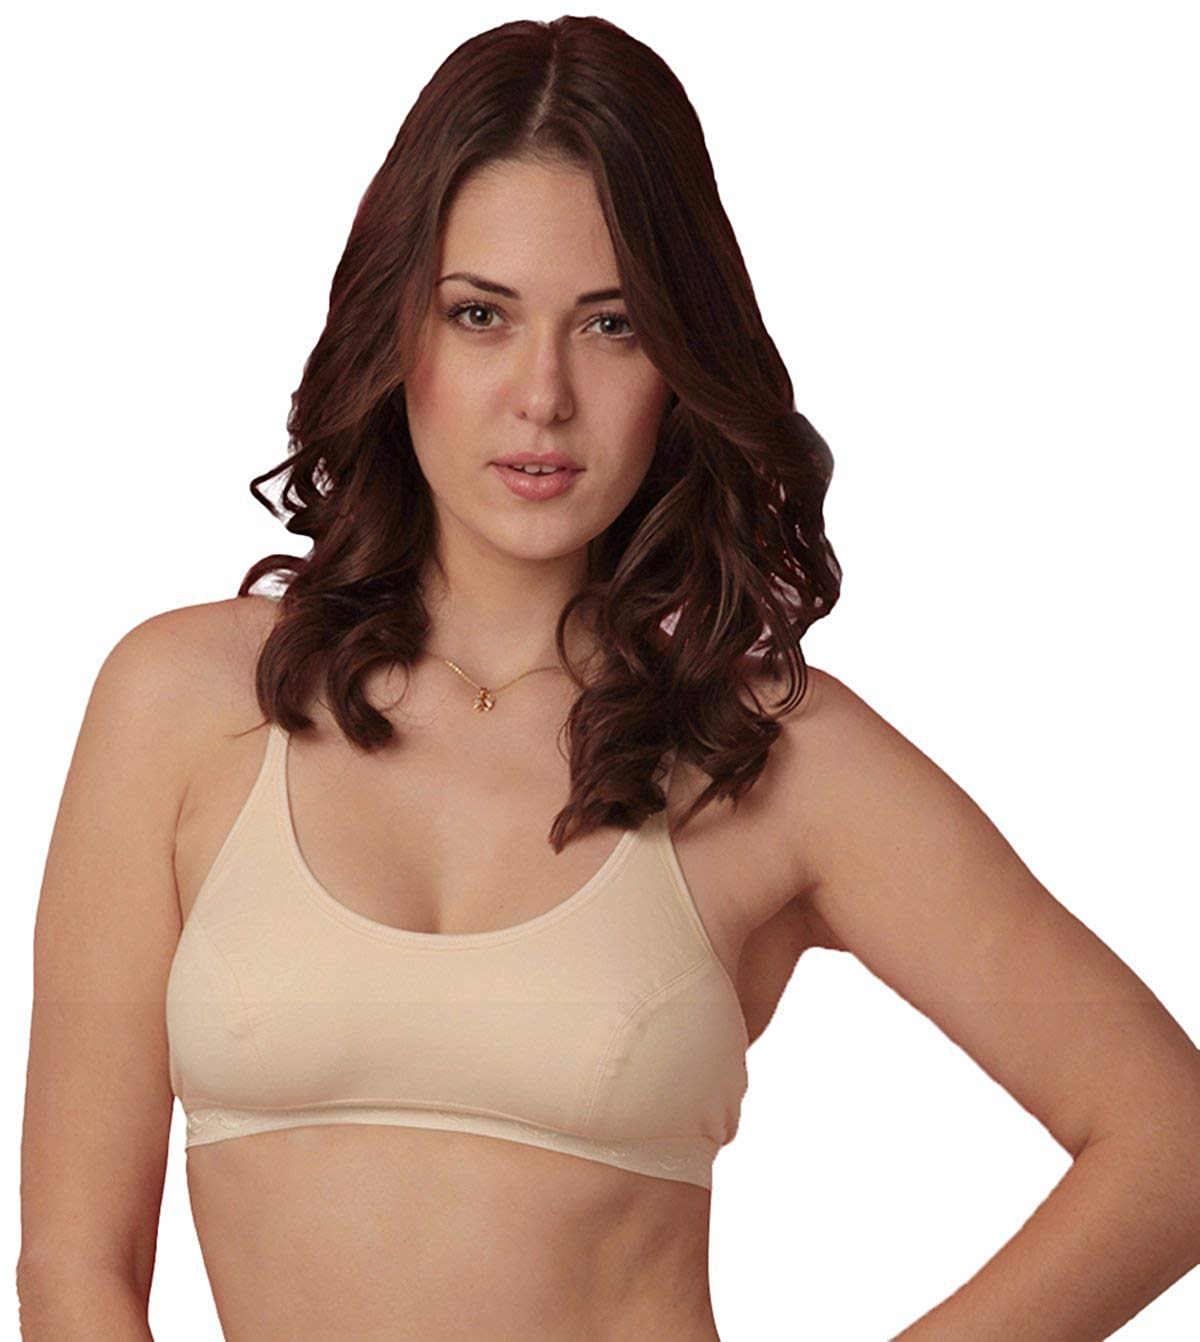 d1ac1b417 Get Quotations · Women Full Coverage Support Sports Yoga Bra Cotton  Circular Fitness Exercise- Beige